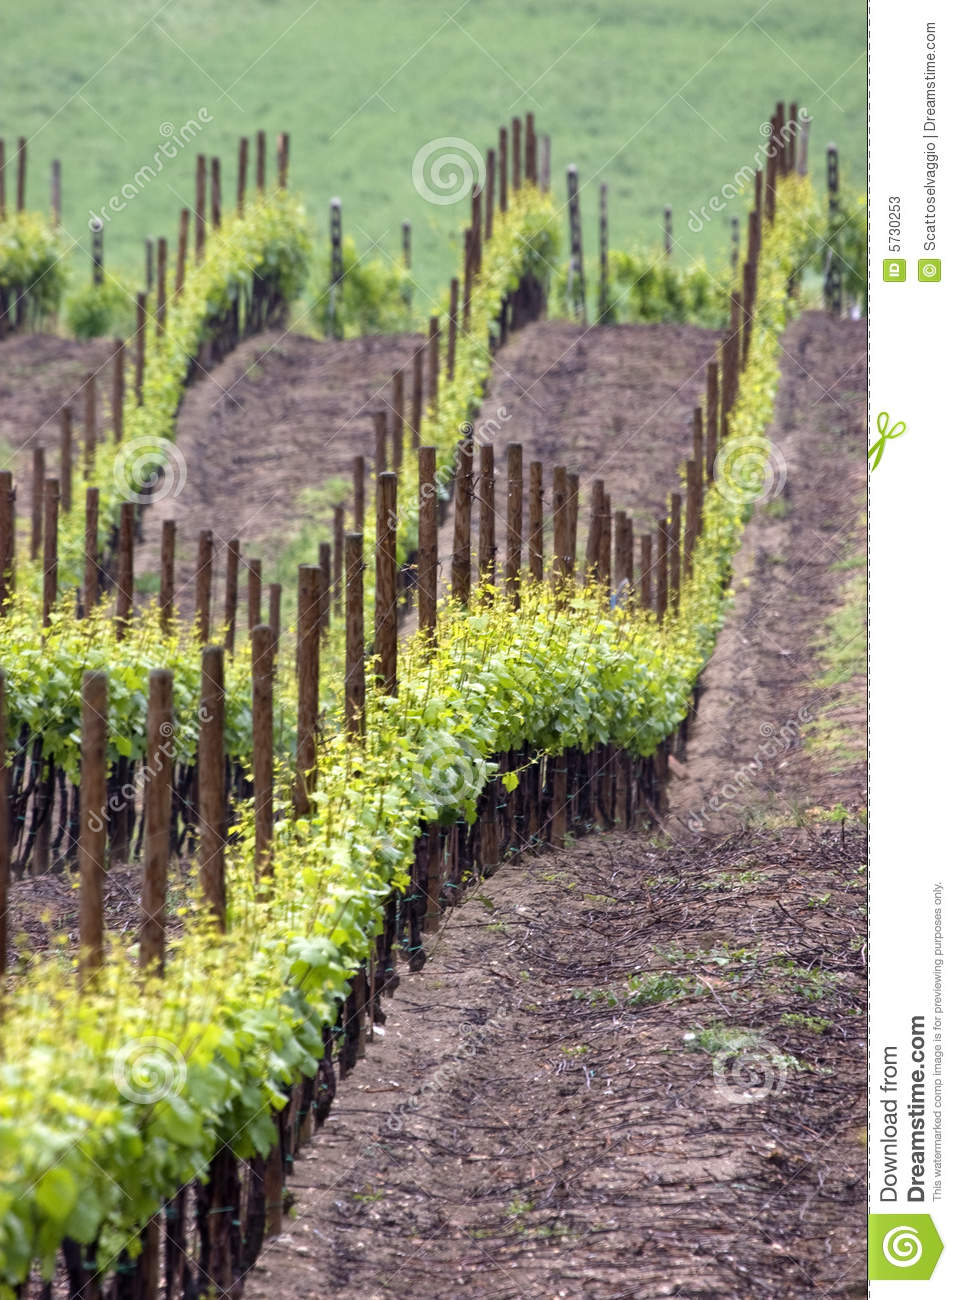 Wine sea have green waves. Colors of spring vineyard near Casteggio, Oltrepo pavese, Pavia, Italy.